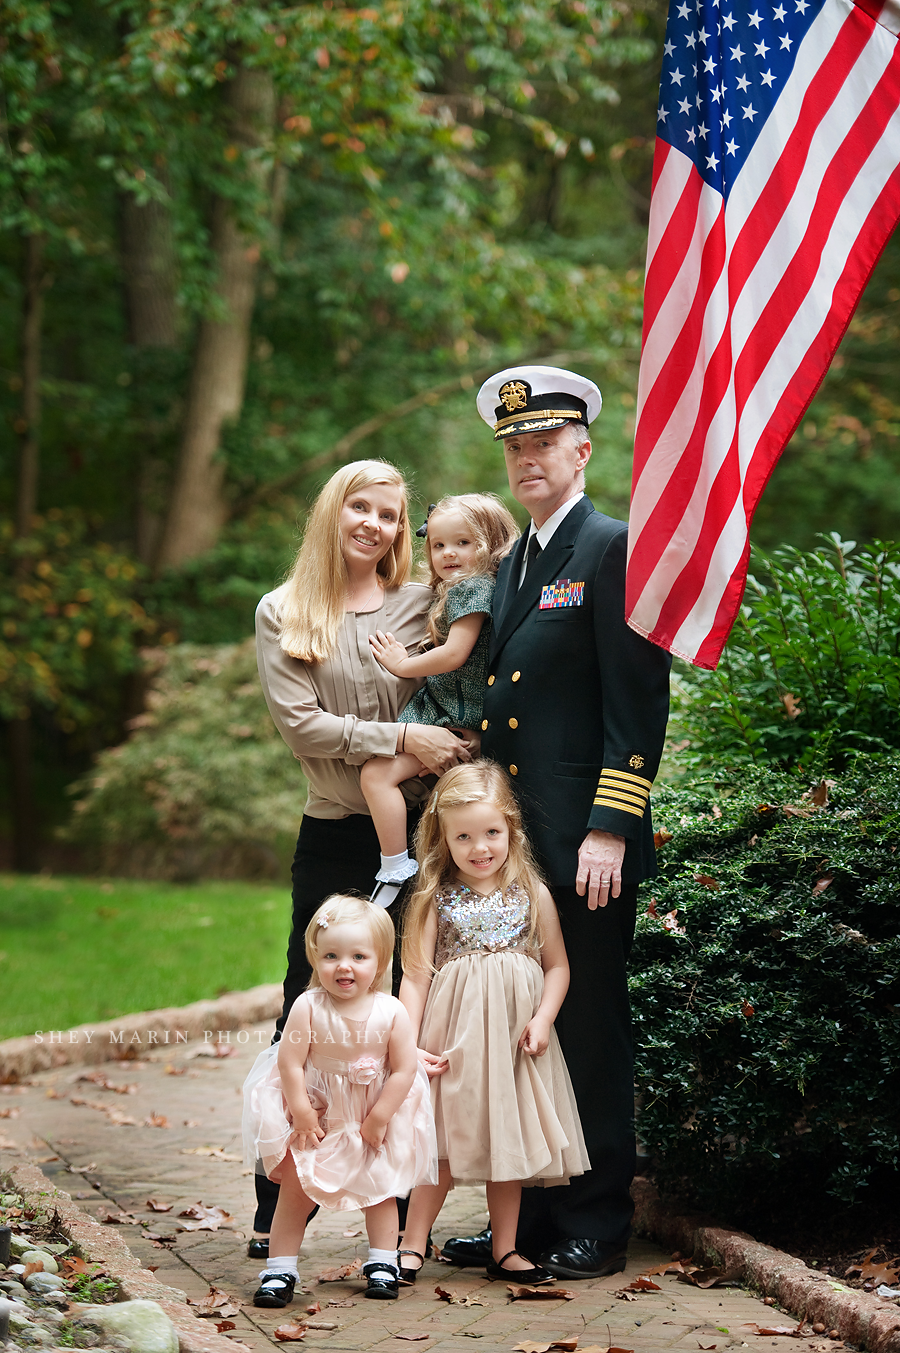 family in front of American flag with soldier father in uniform